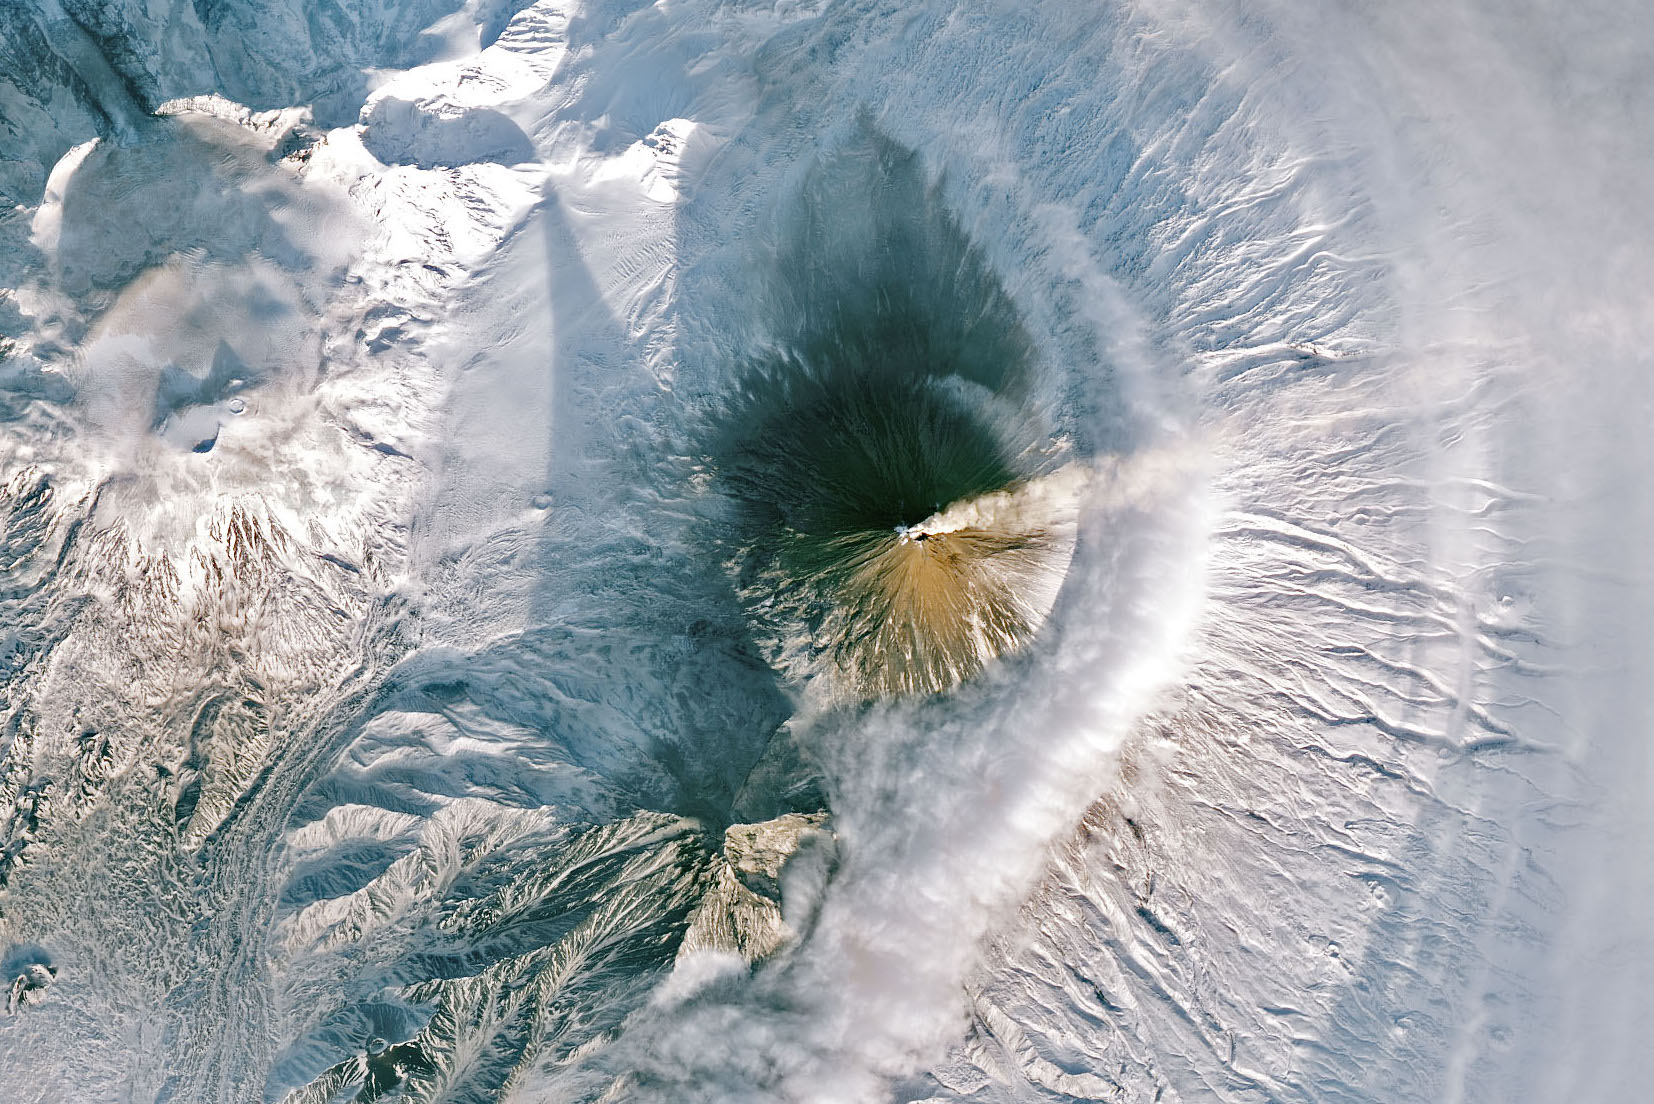 Today's Image of the Day comes from NASA and features a look at plumes puffing out of the Klyuchevskaya volcano on the Kamchatka Peninsula.